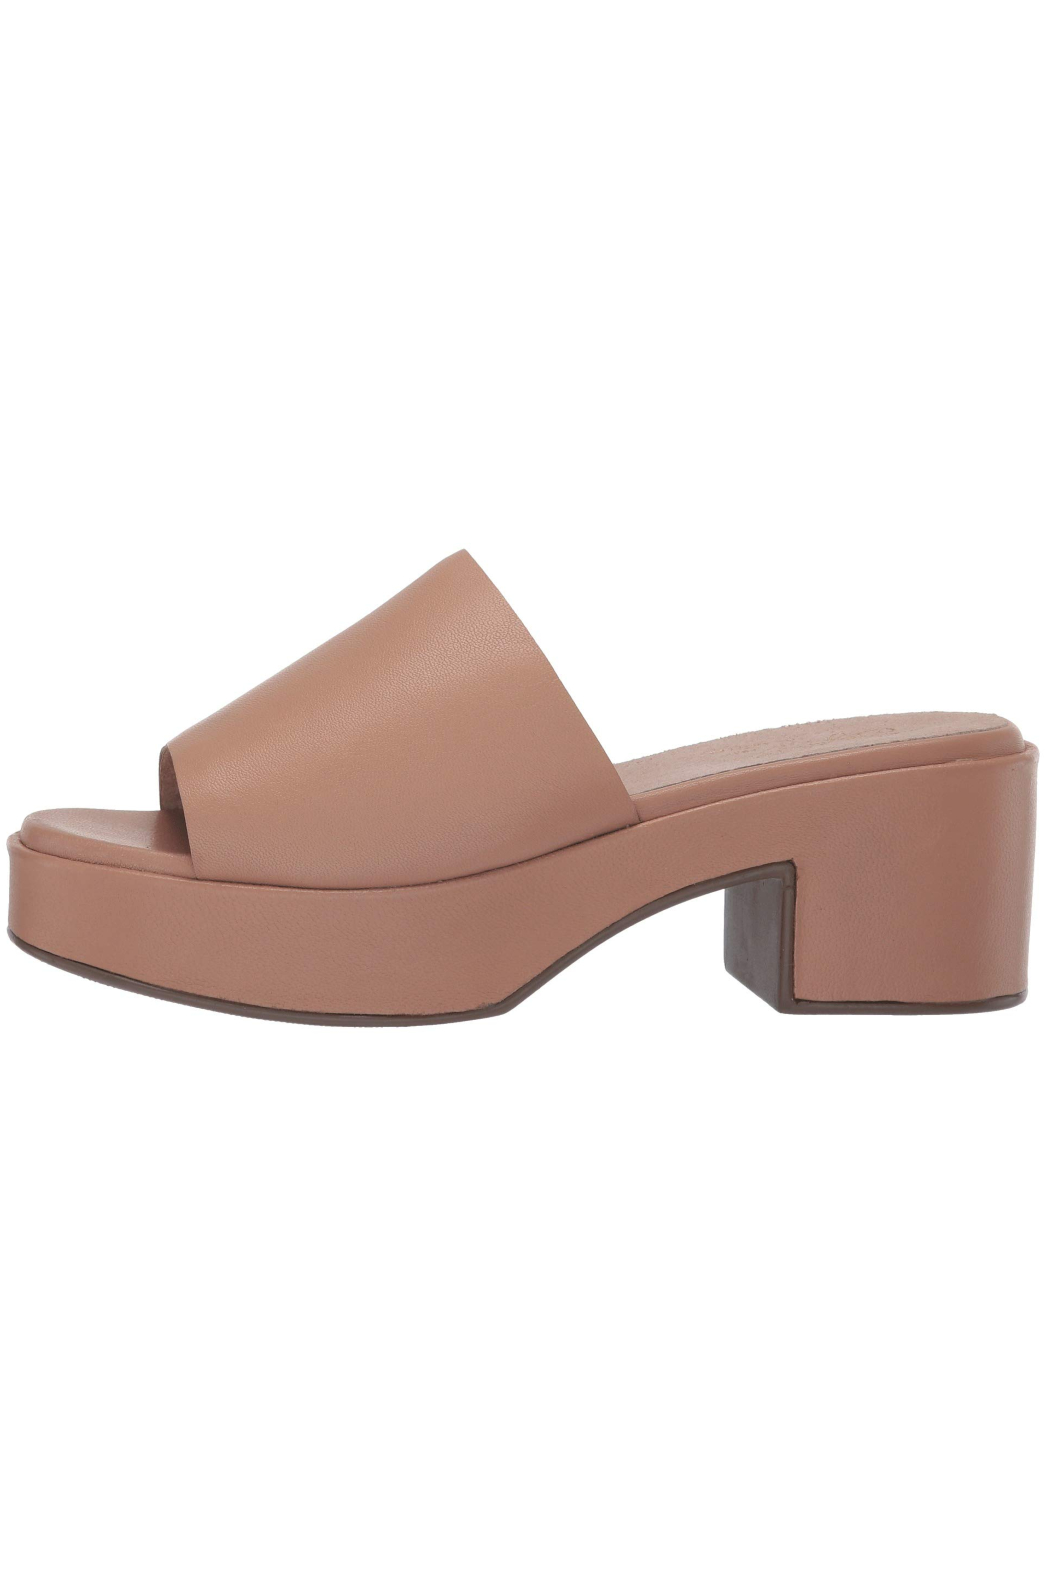 Seychelles One Of A Kind Heeled Slide - Front Cropped Image